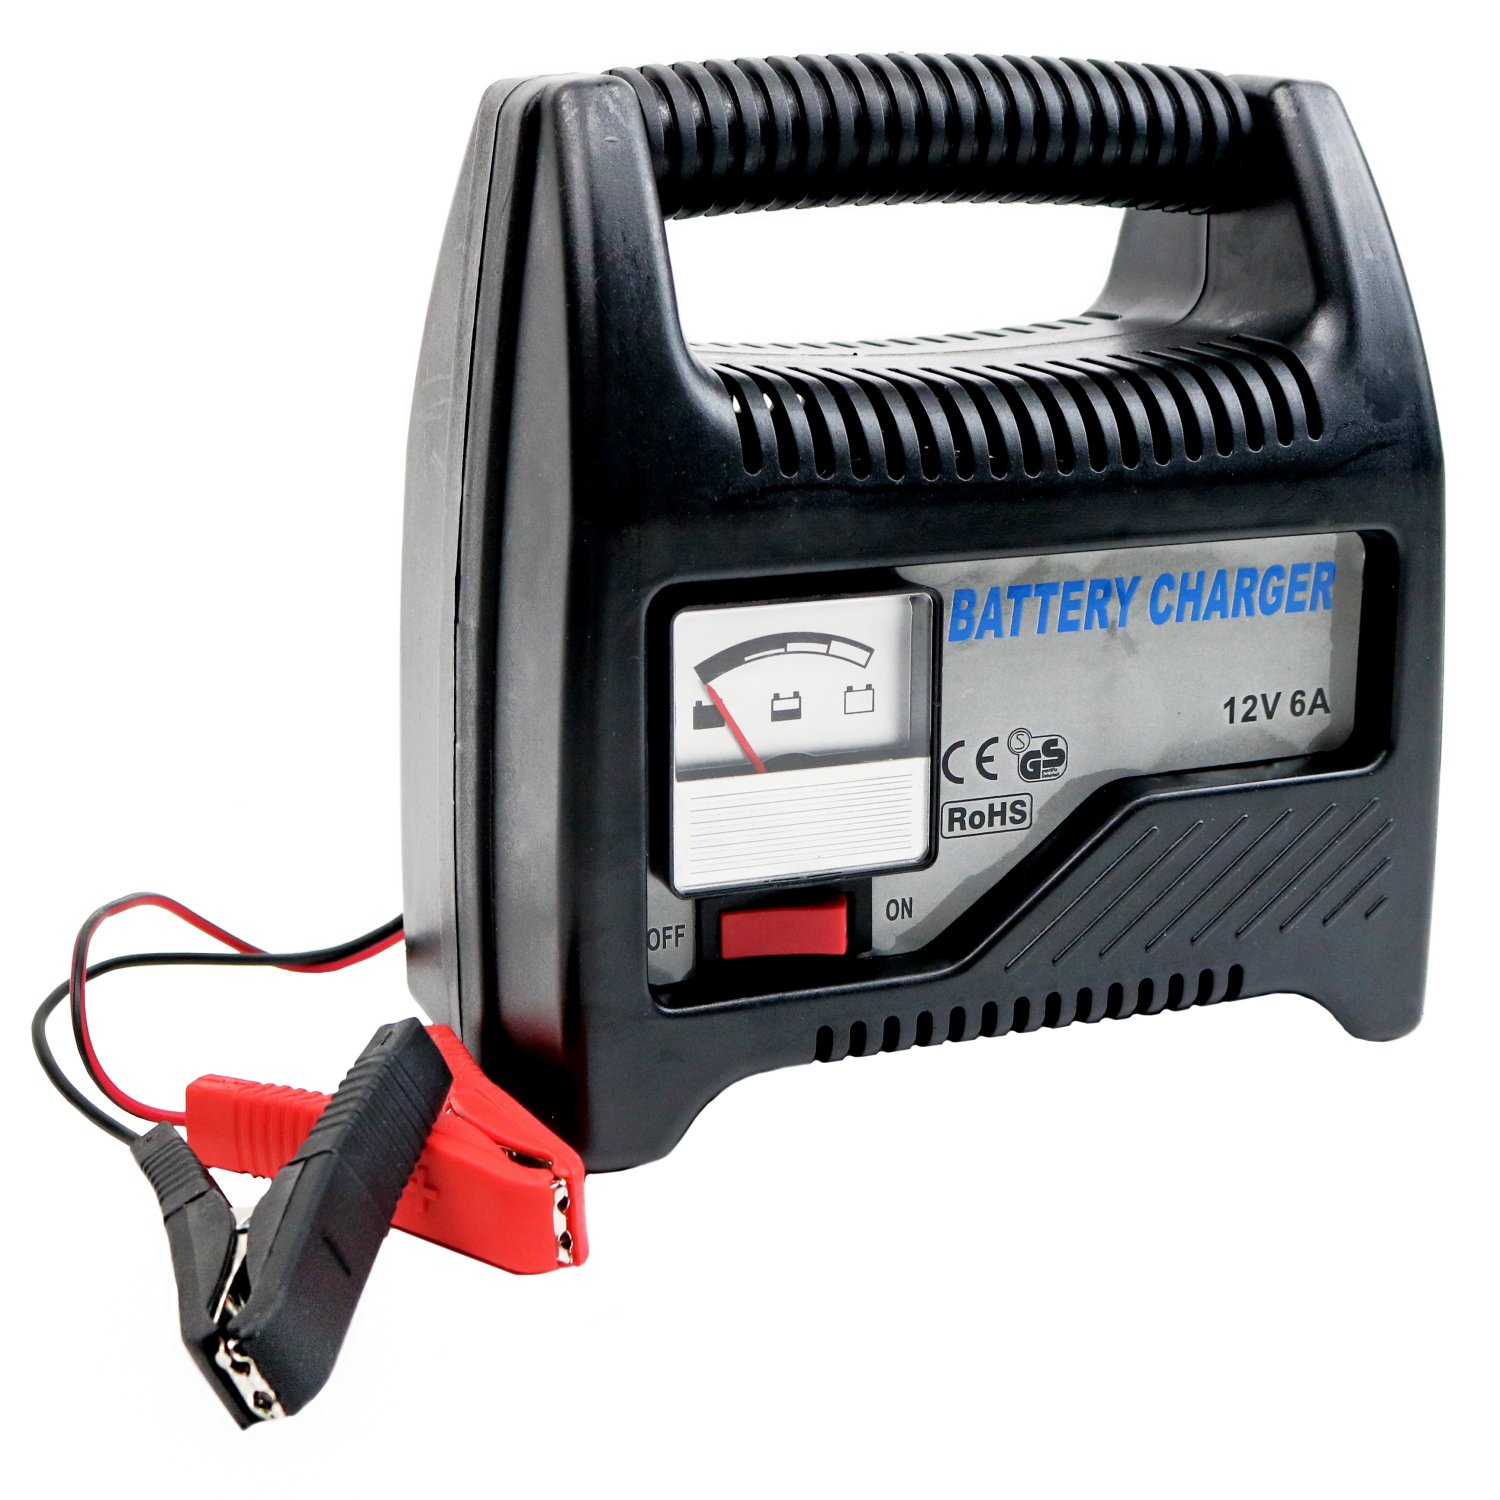 6a 12v Compact Portable Car Van Vehicle Battery Charger